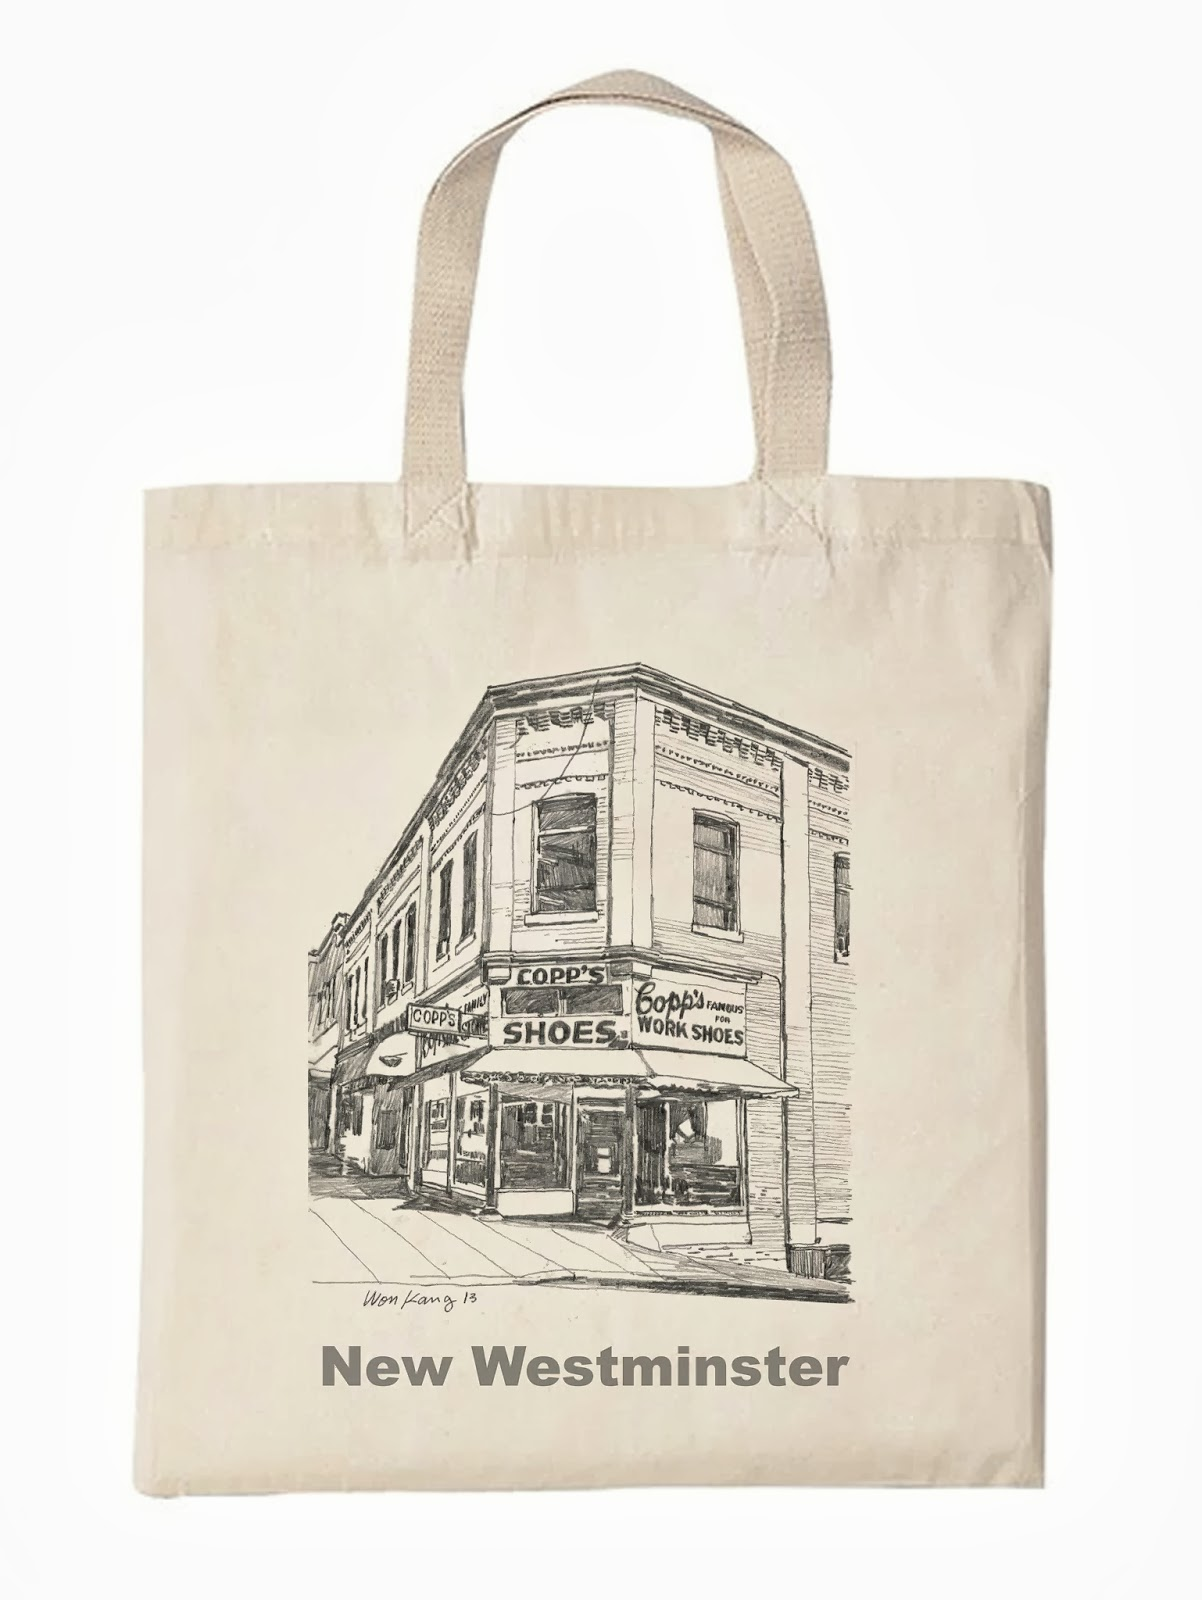 Tote bag commemorating Copps Shoes in New Westminster which recently burnt to the ground.